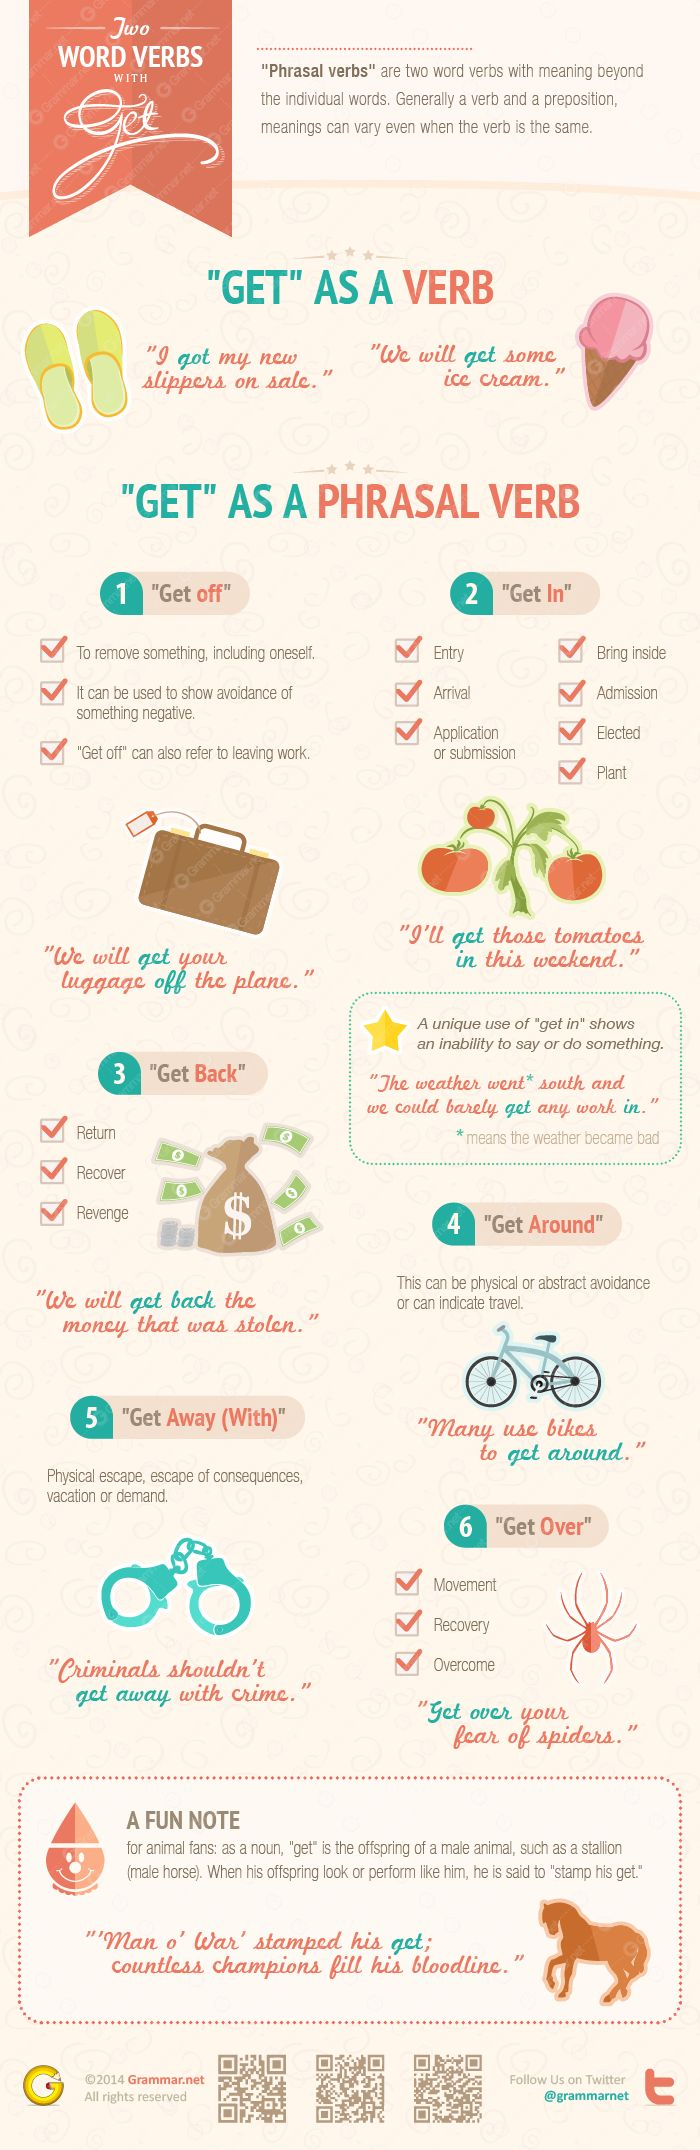 Aprende inglés: two words with get - phrasal vía: www.granmar.net #infografia…